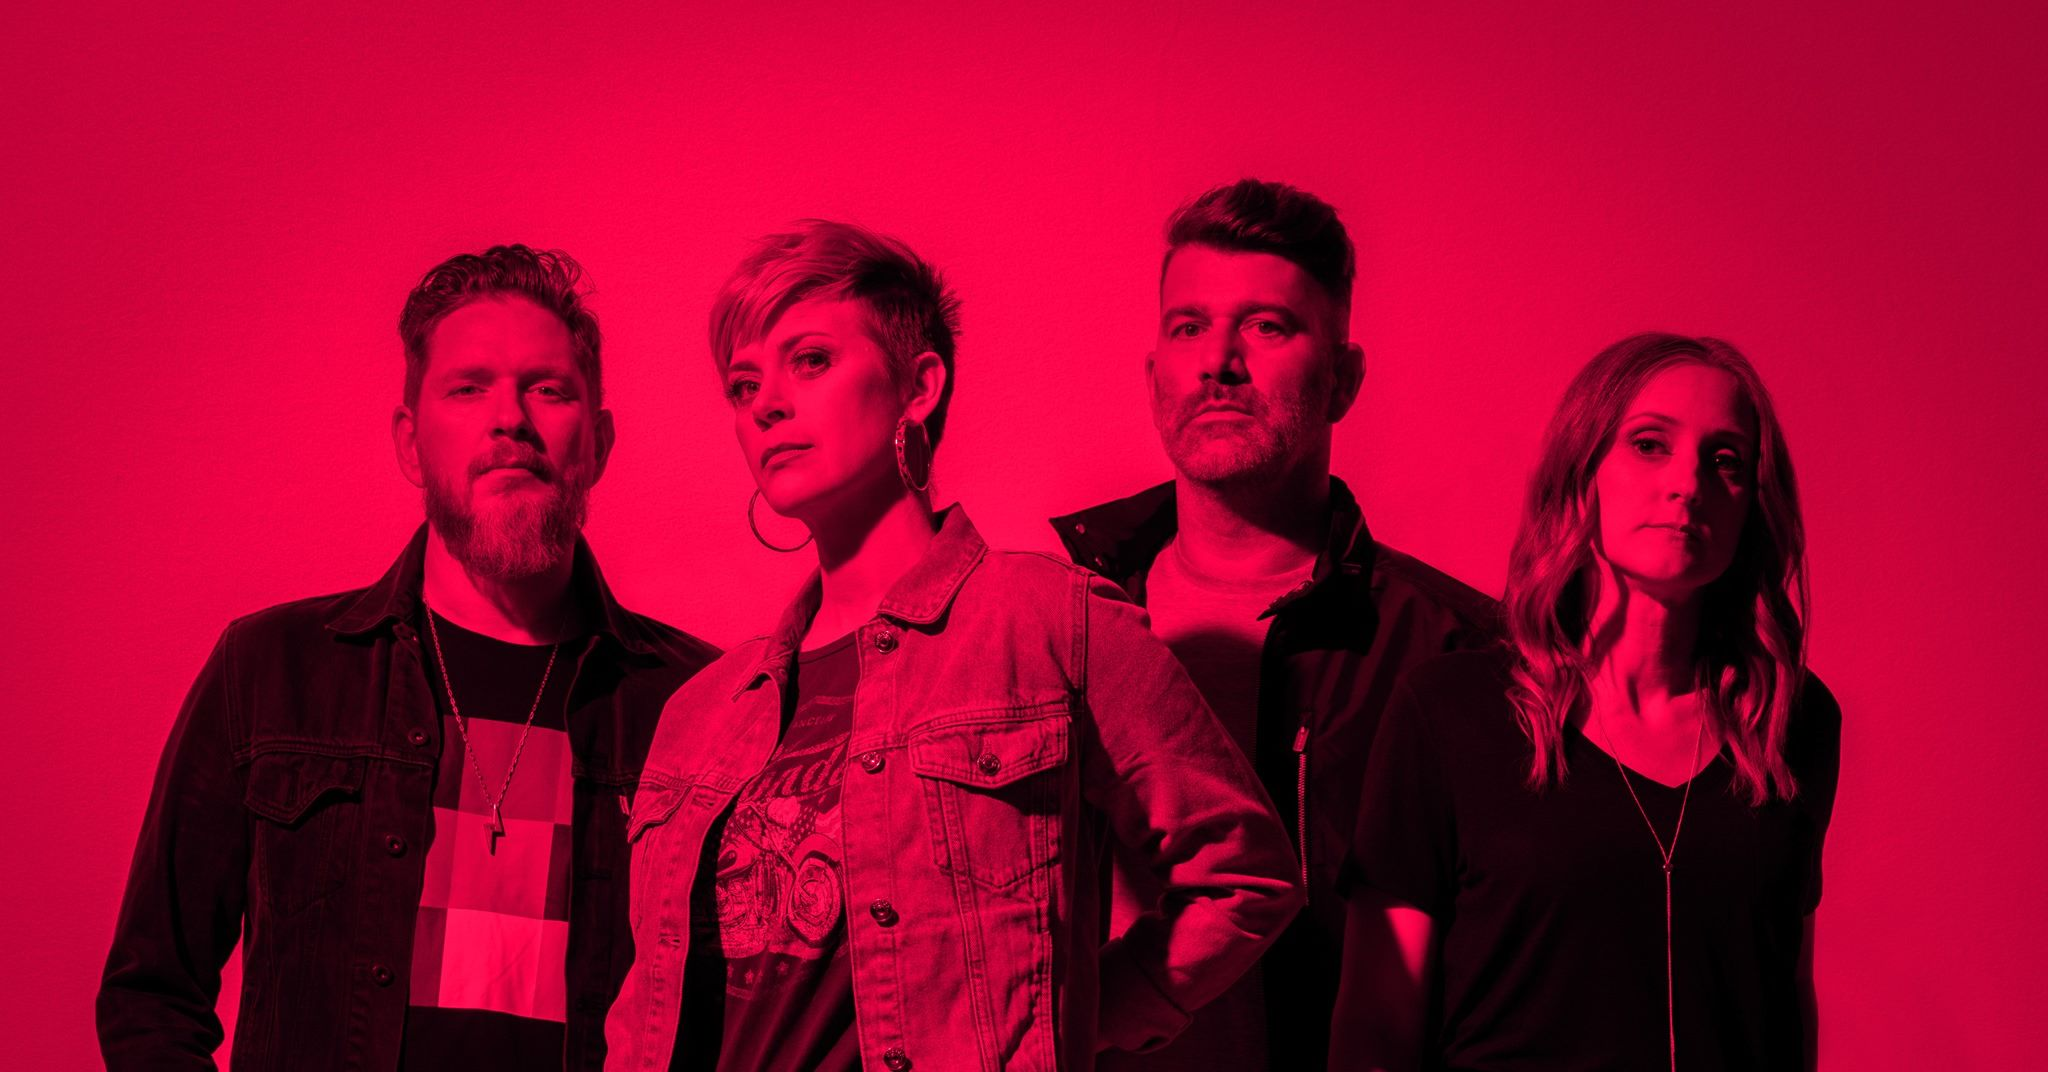 Fireflight Host Live Who We Are Album Listening Party; Exclusive 24 Hour Pre-Order - FIREFLIGHT'S 'UNBREAKABLE' CERTIFIED GOLD